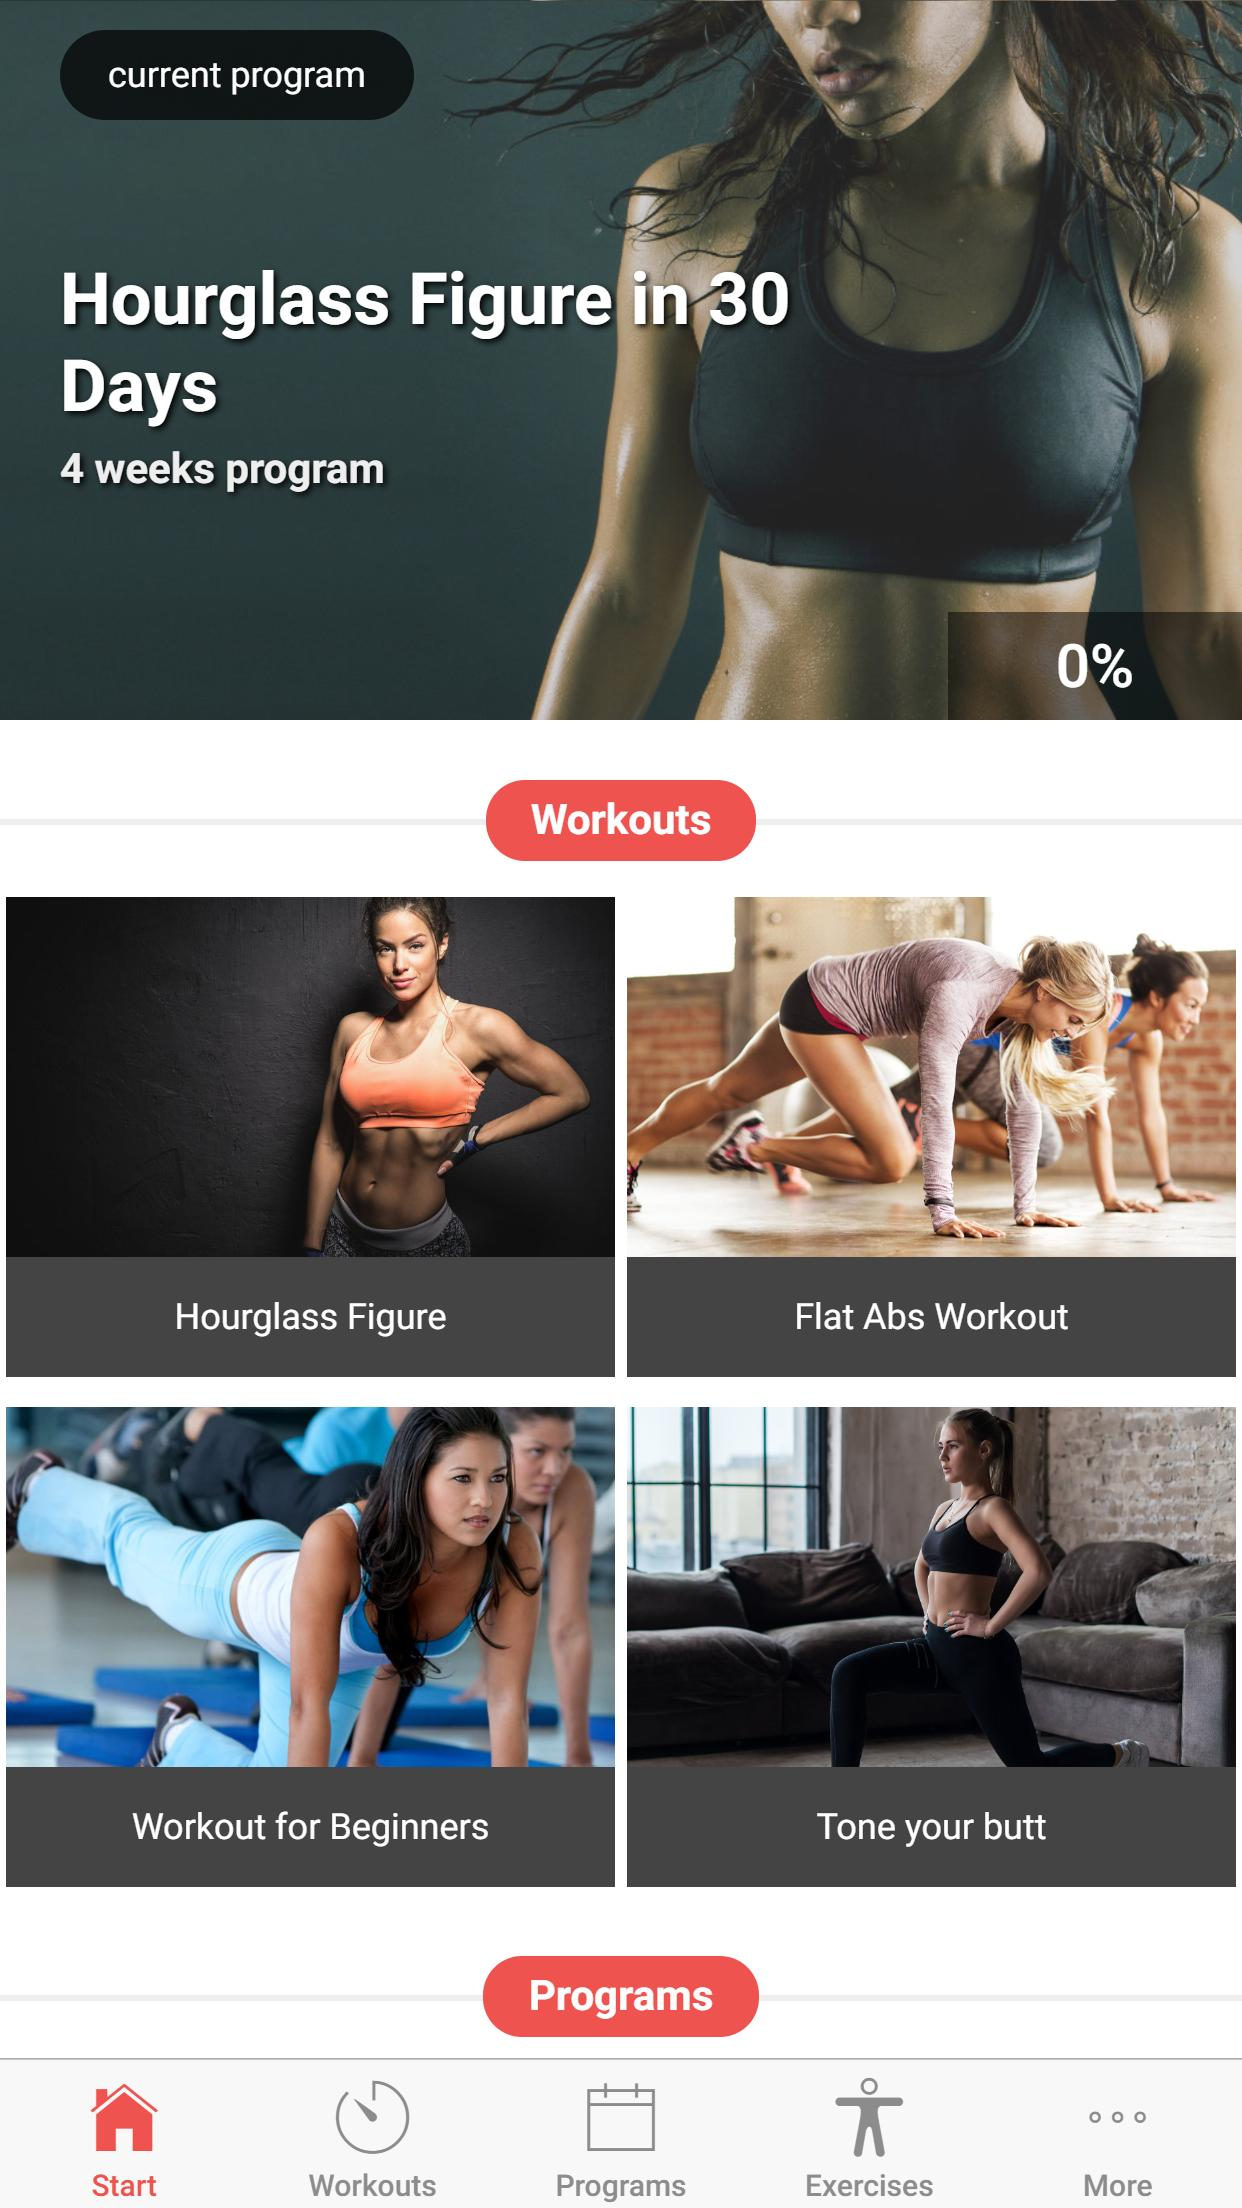 30 Day Hourglass Figure Workout for Android - APK Download